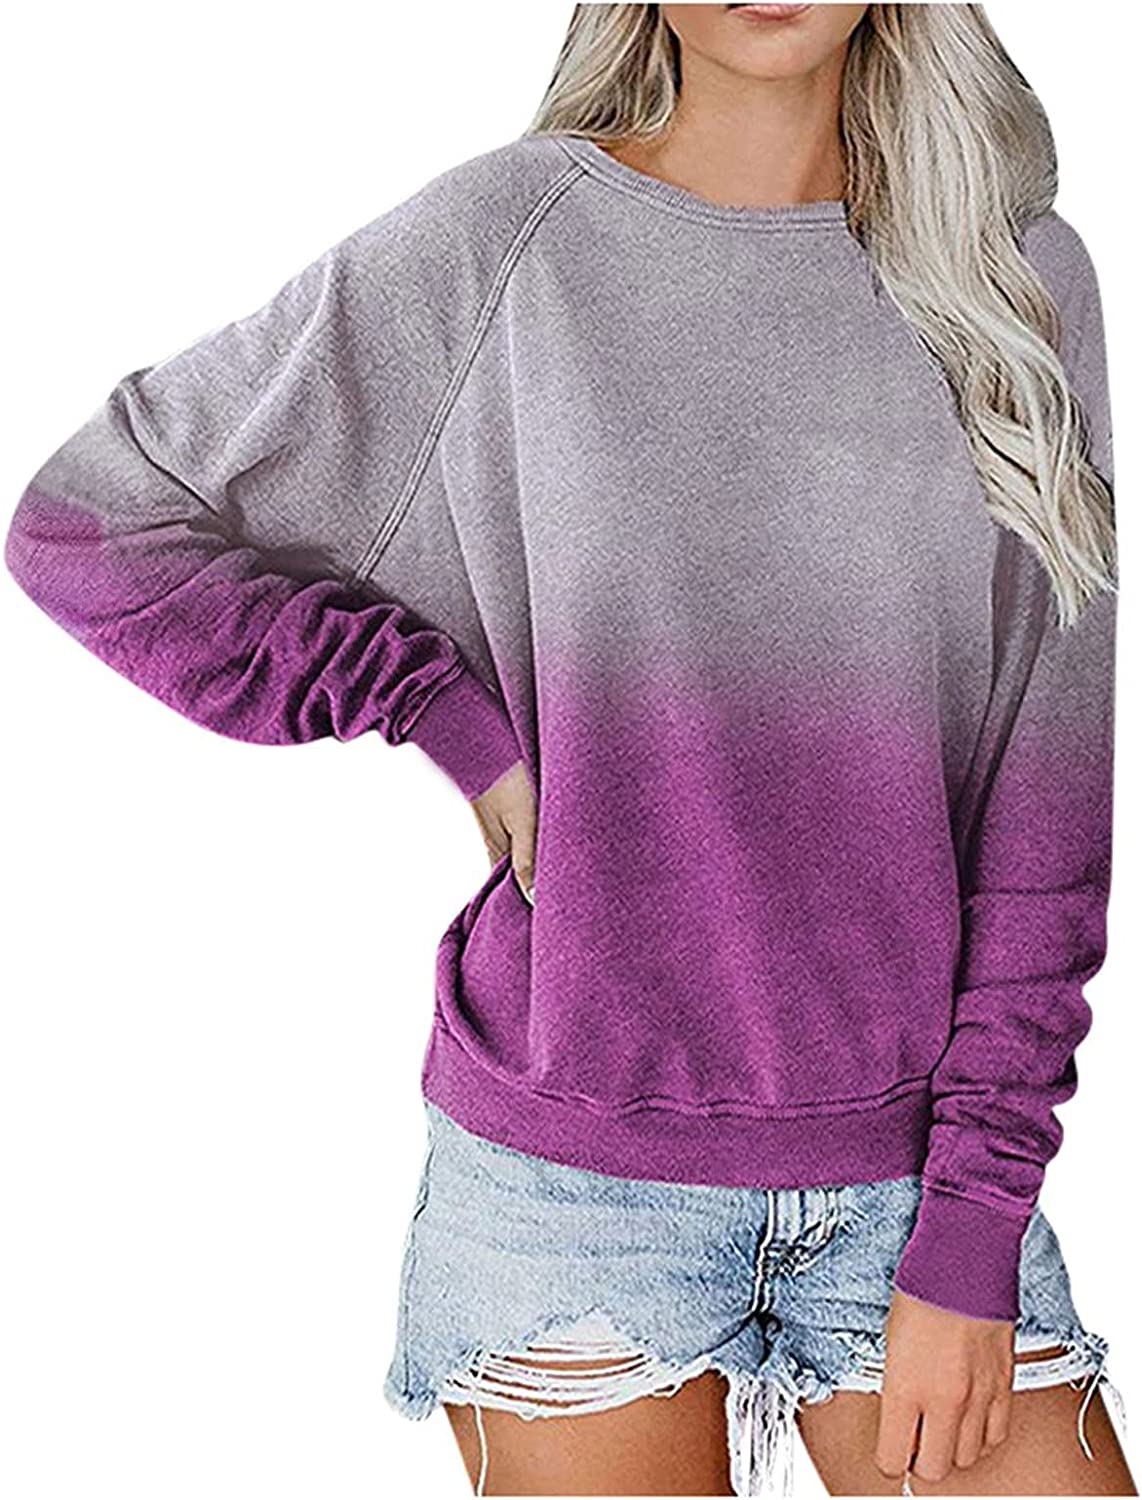 felwors Pullover Tops for Women, Womens Casual Loose Gradient Printed Crewneck Long Sleeve Pullover Sweatshirt Tops